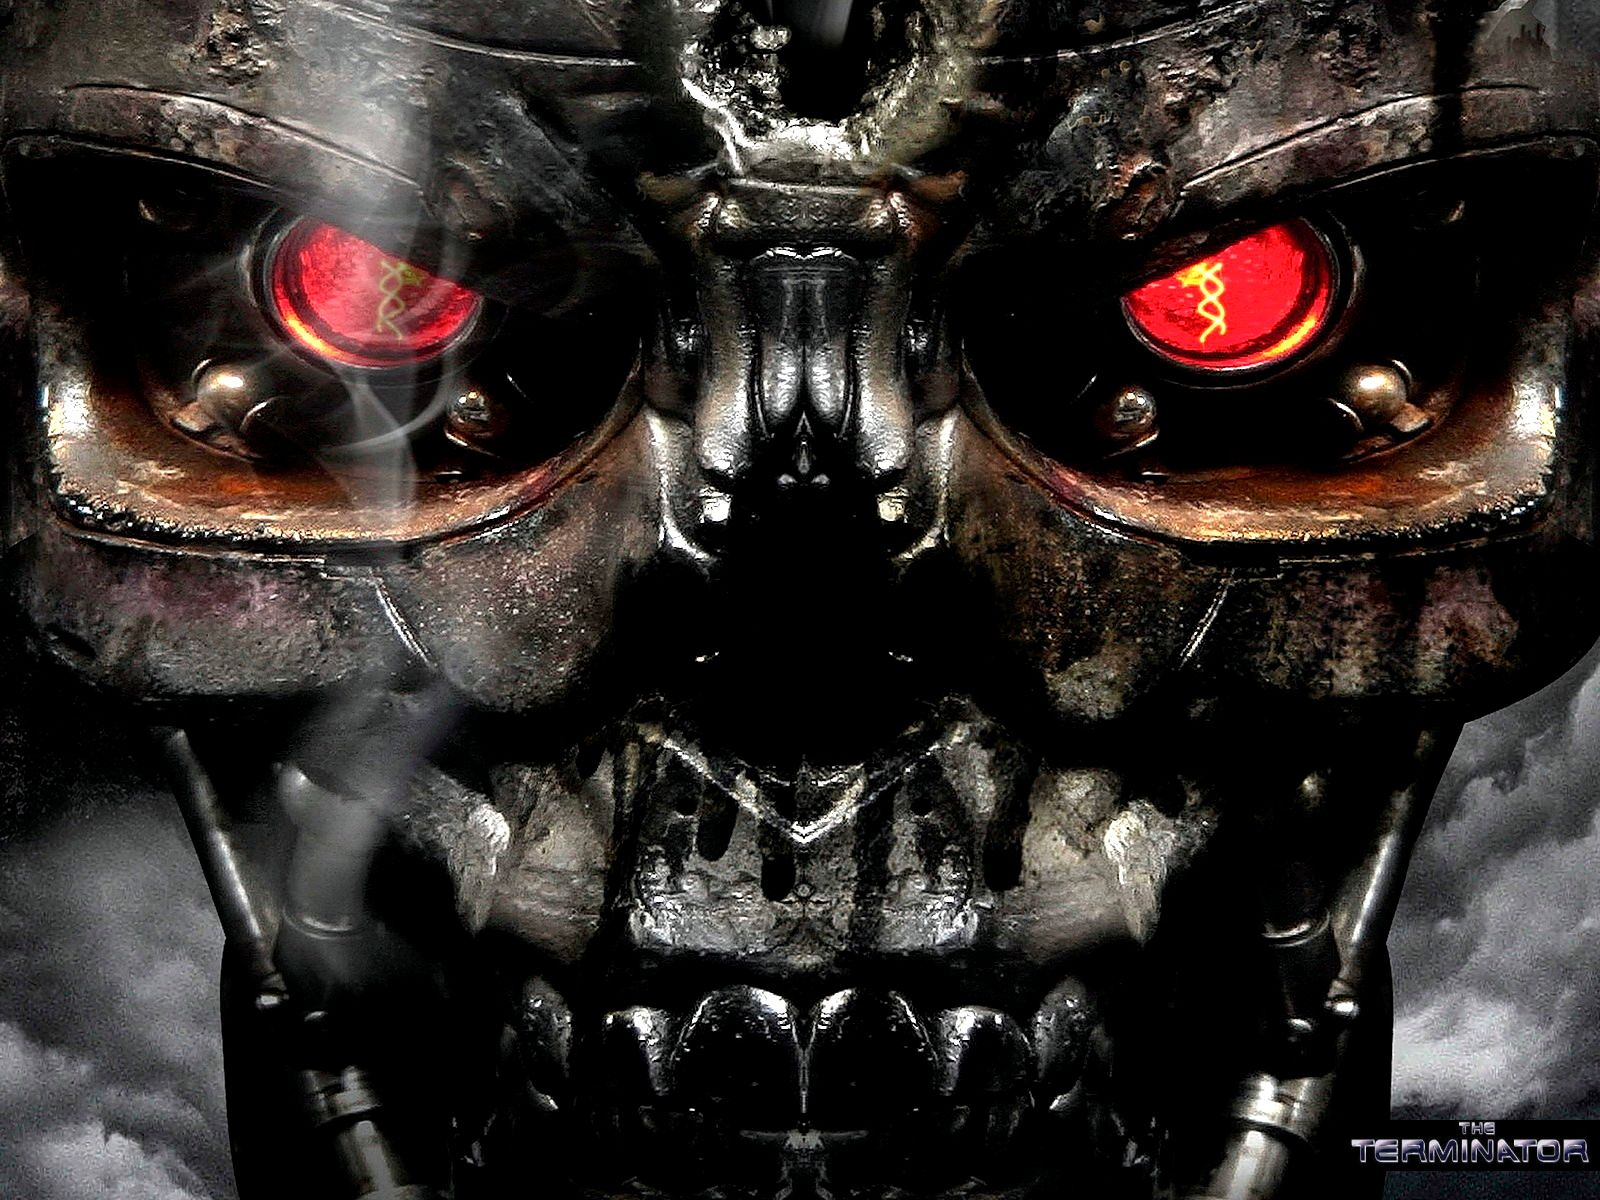 'Terminator Genisys' Is Not Sequel or Reboot